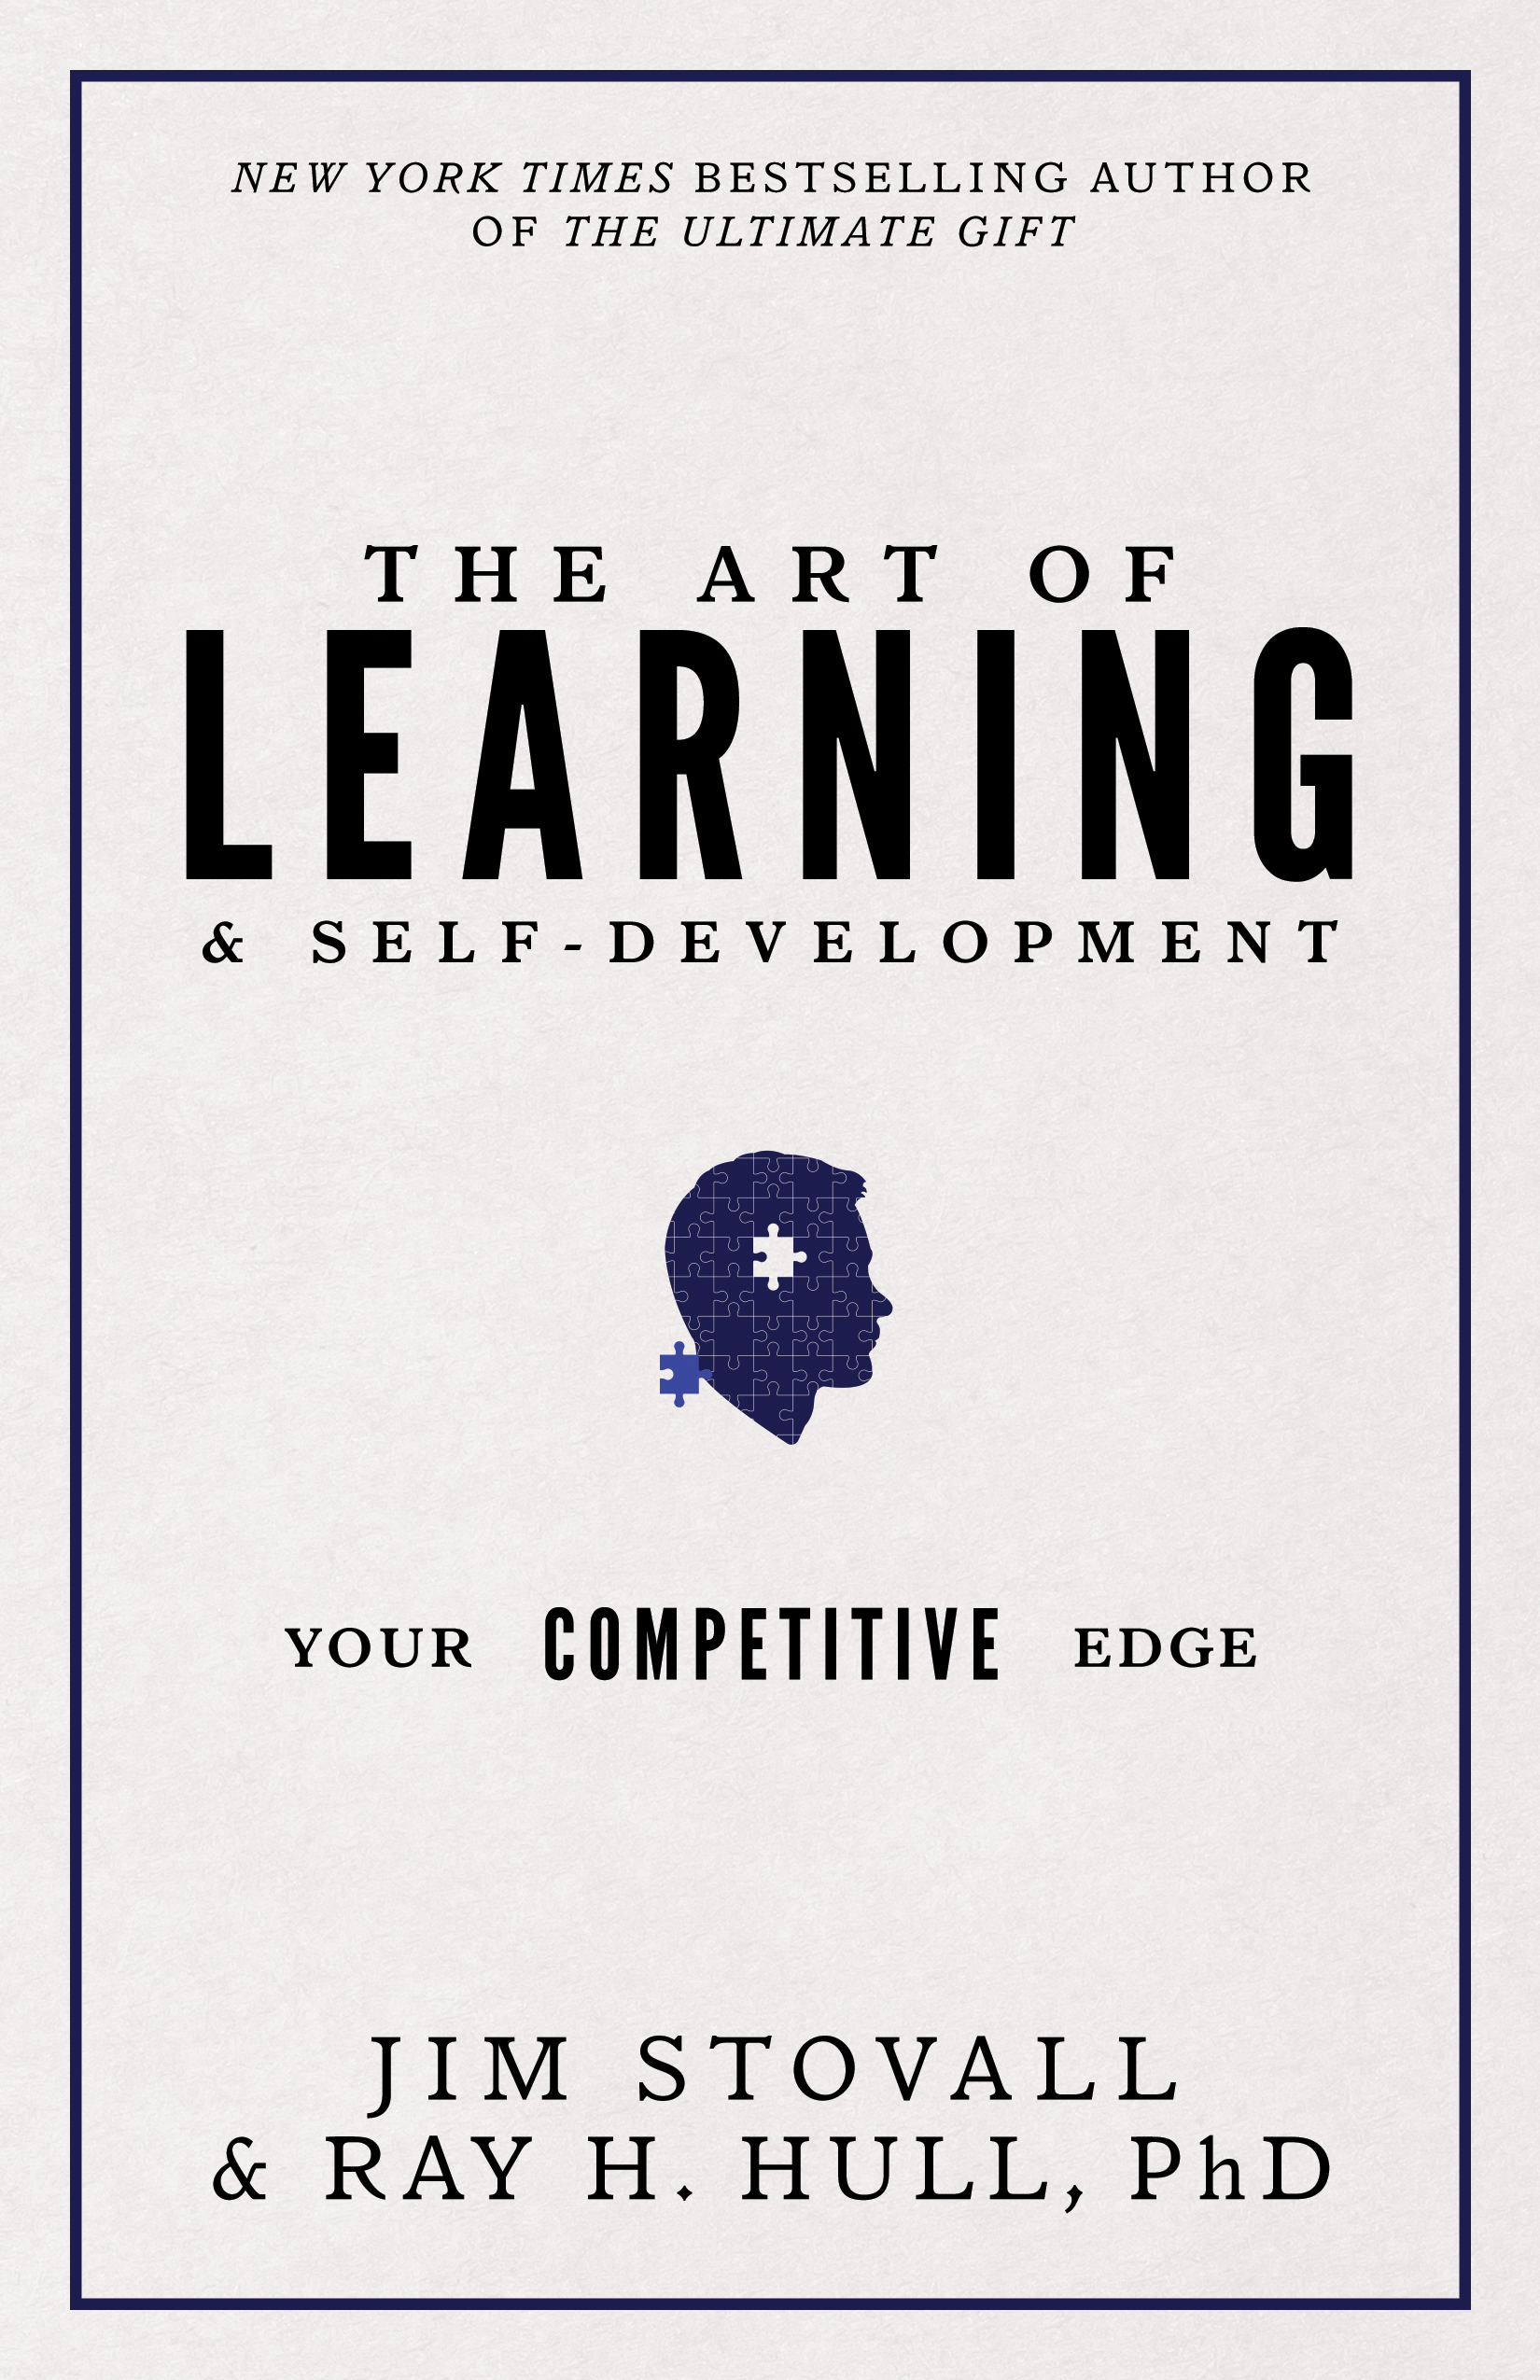 The Art of Learning and Self-Development - Jim Stovall & Ray H. Hull, PHD